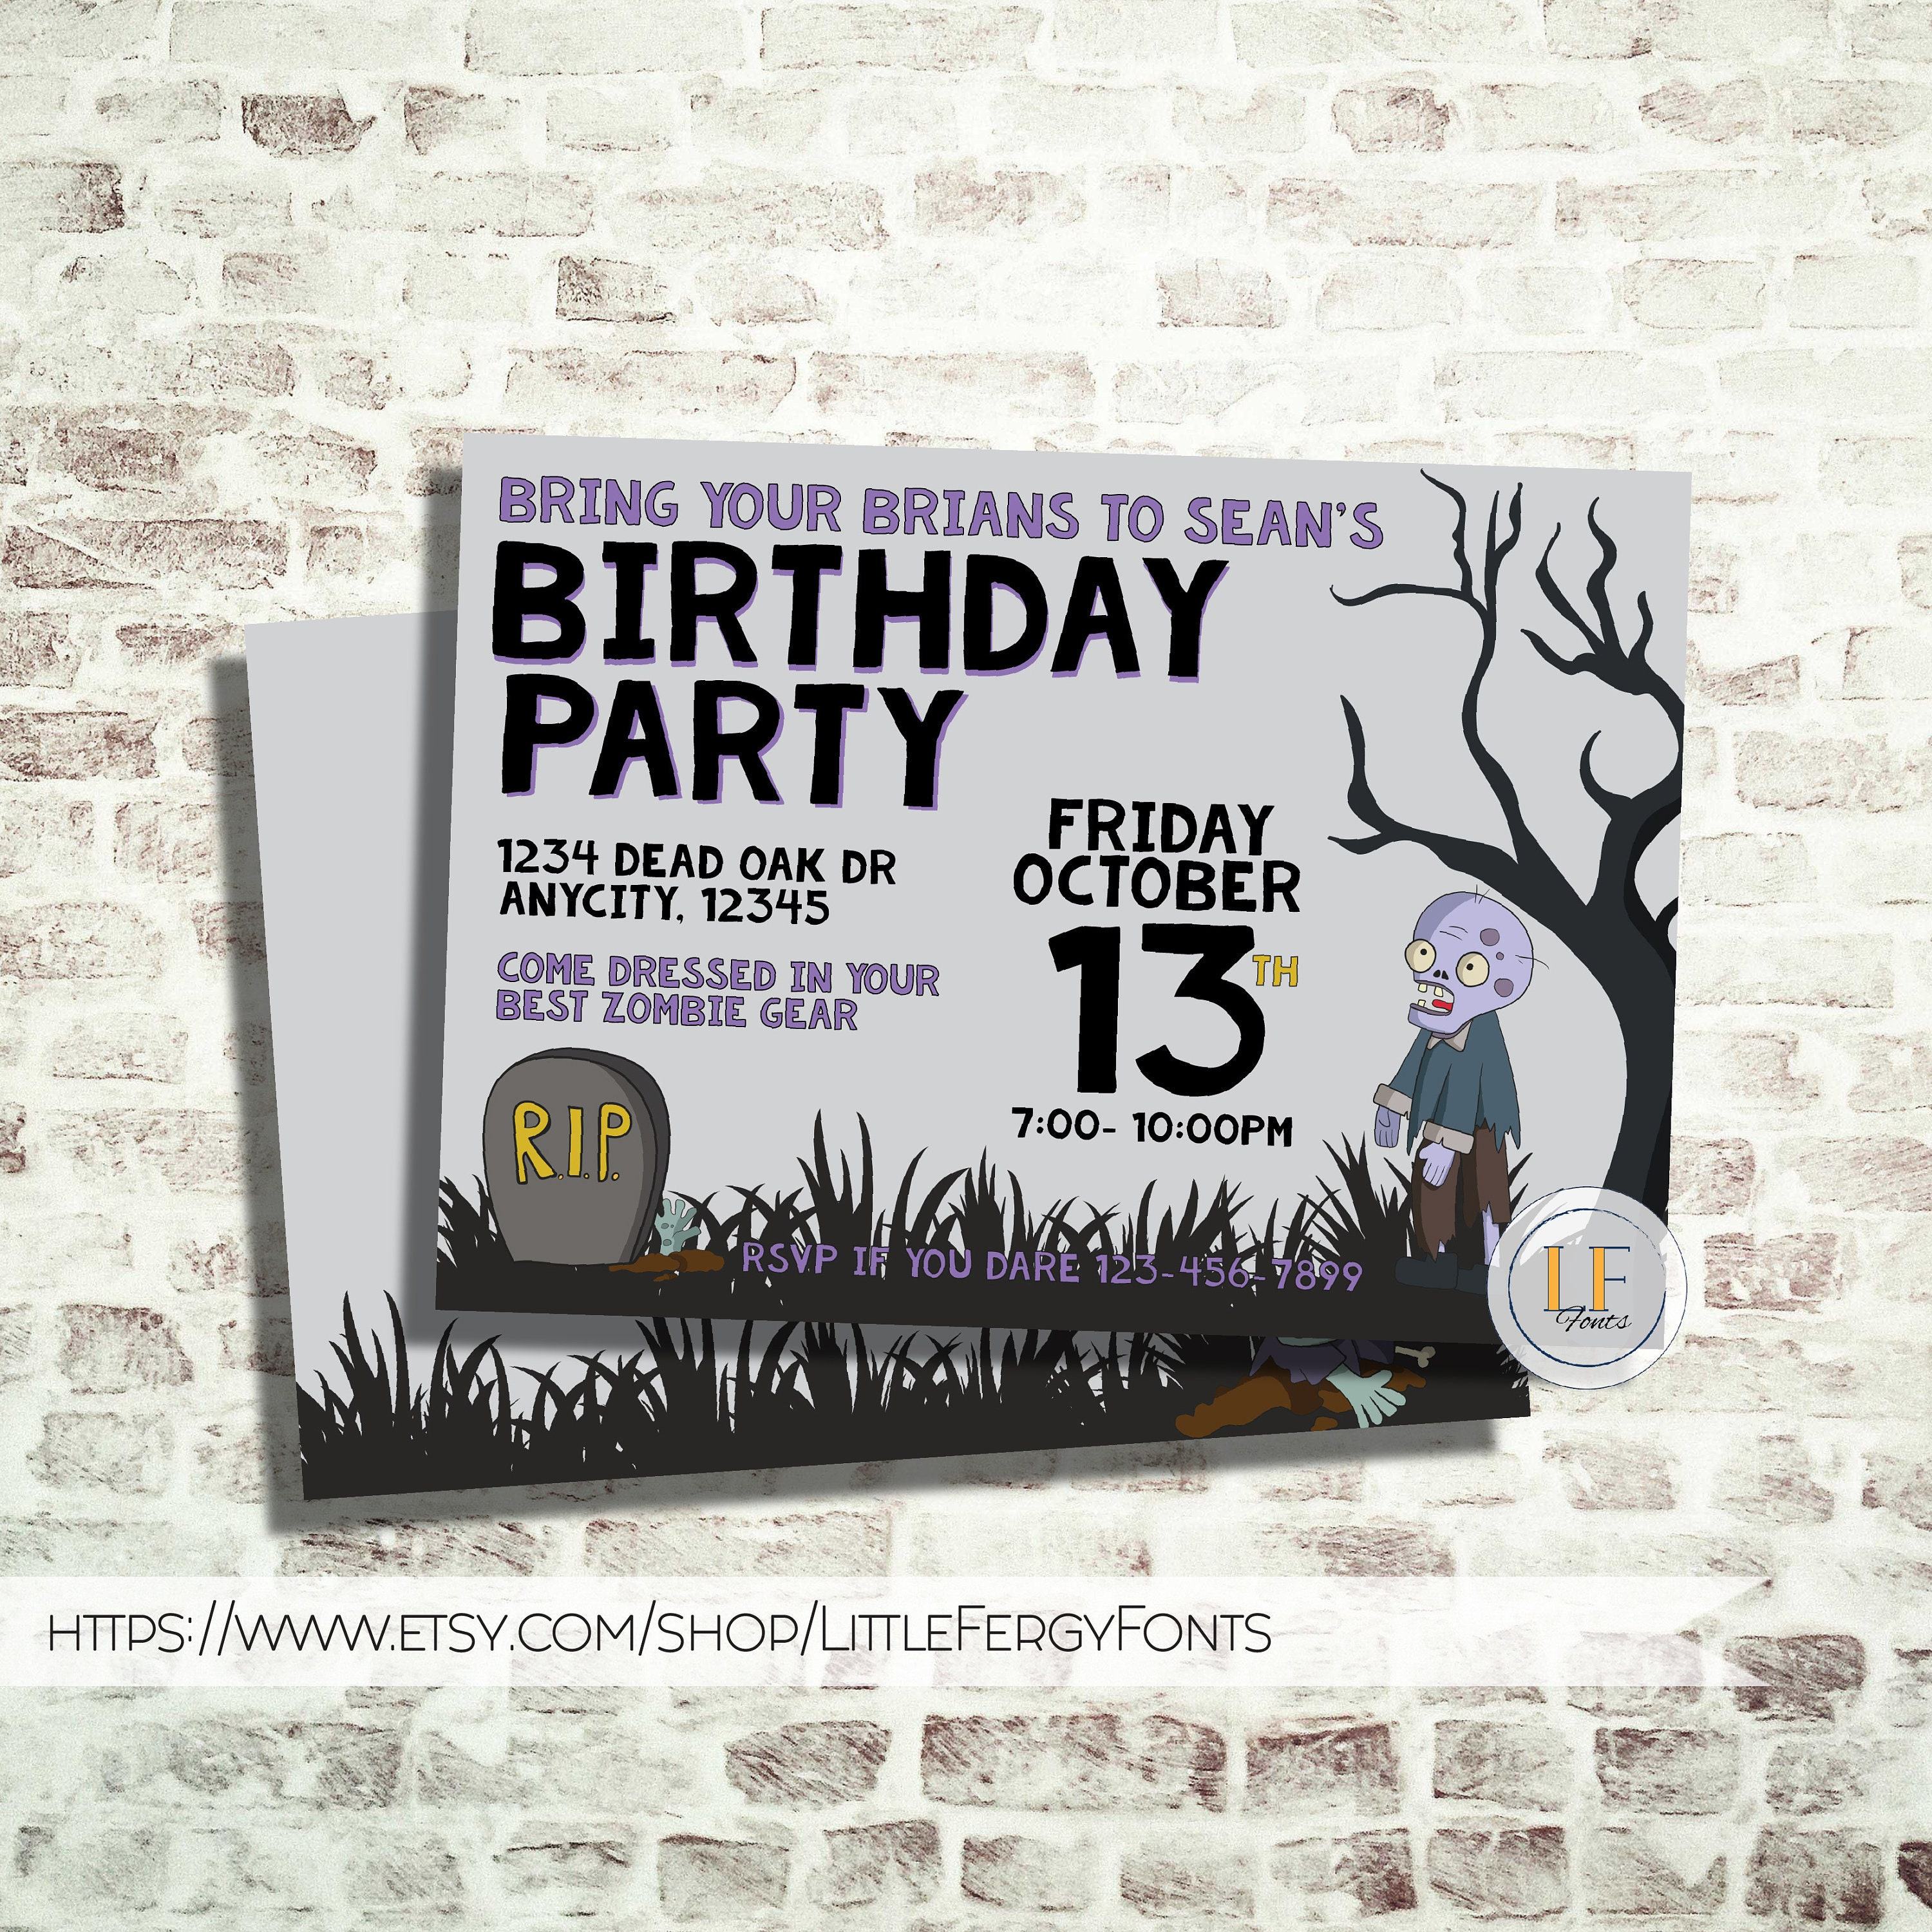 24 HE or LESS // 013 Zombie Halloween OR Birthday Invitation   Etsy